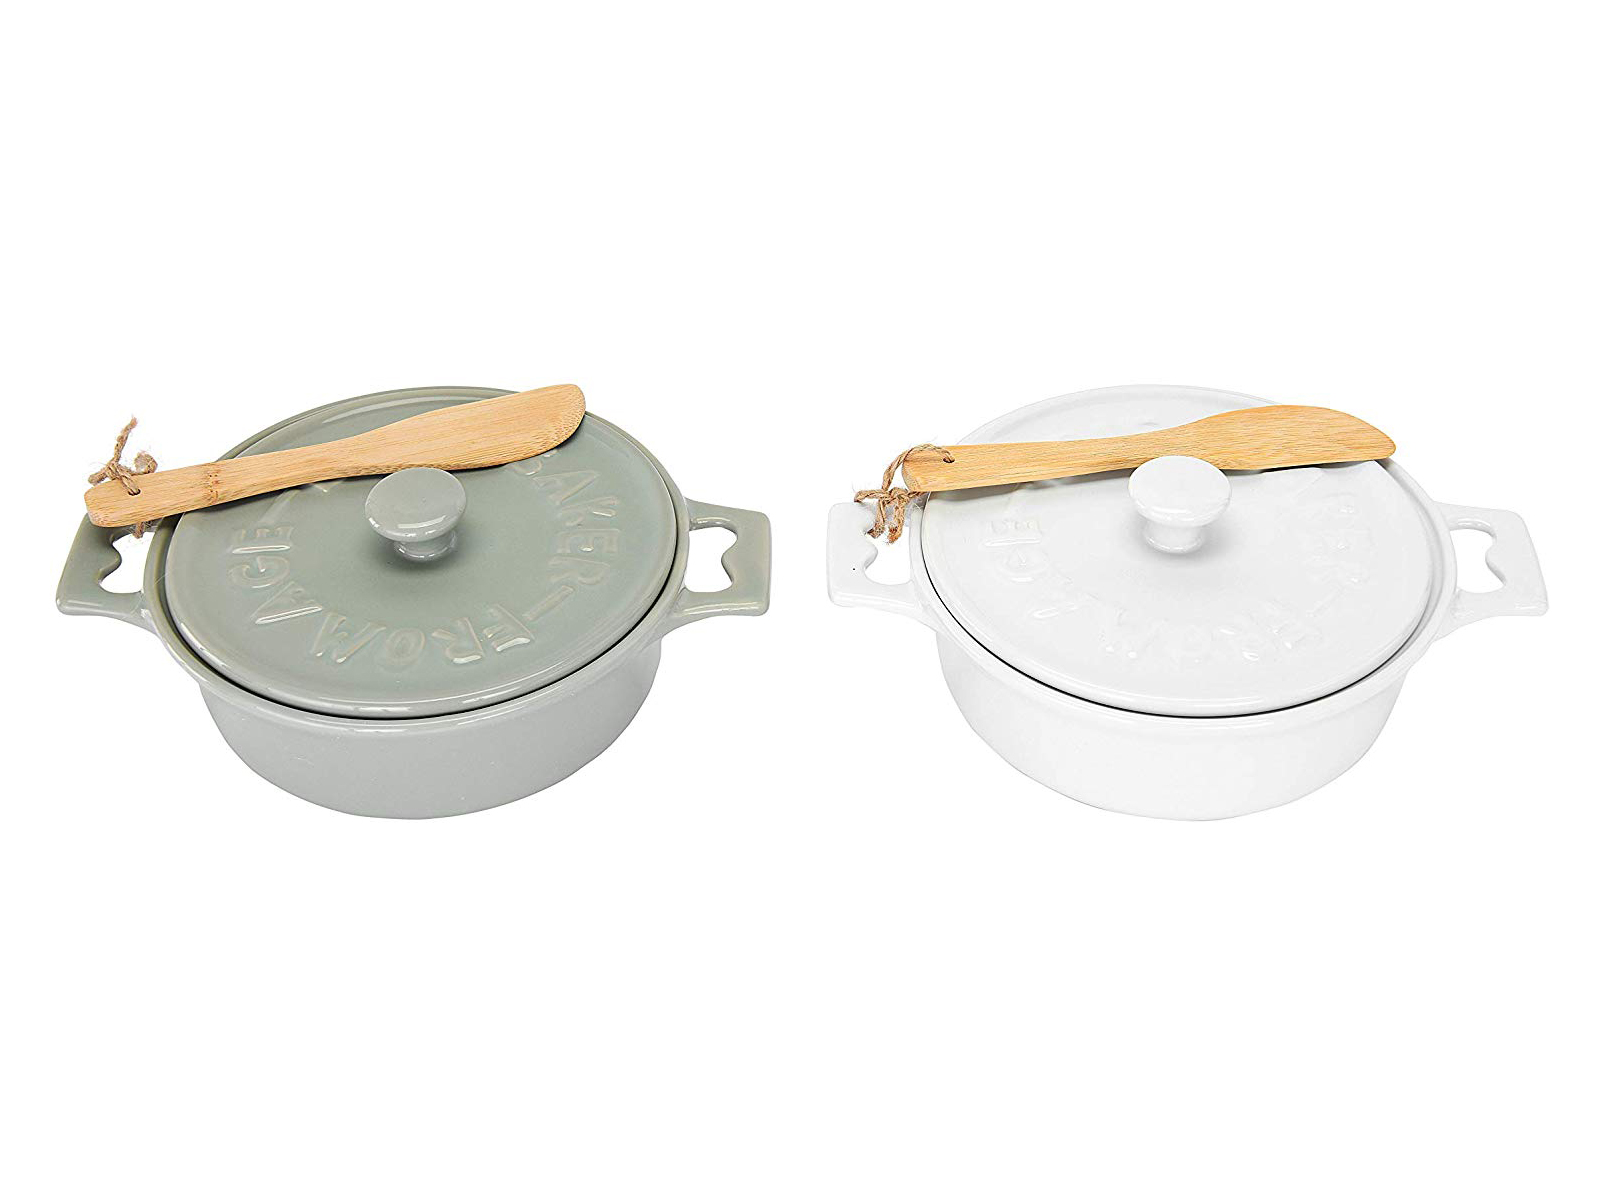 Brie baking dishes with lids and wooden spreaders - in white and sage green/gray